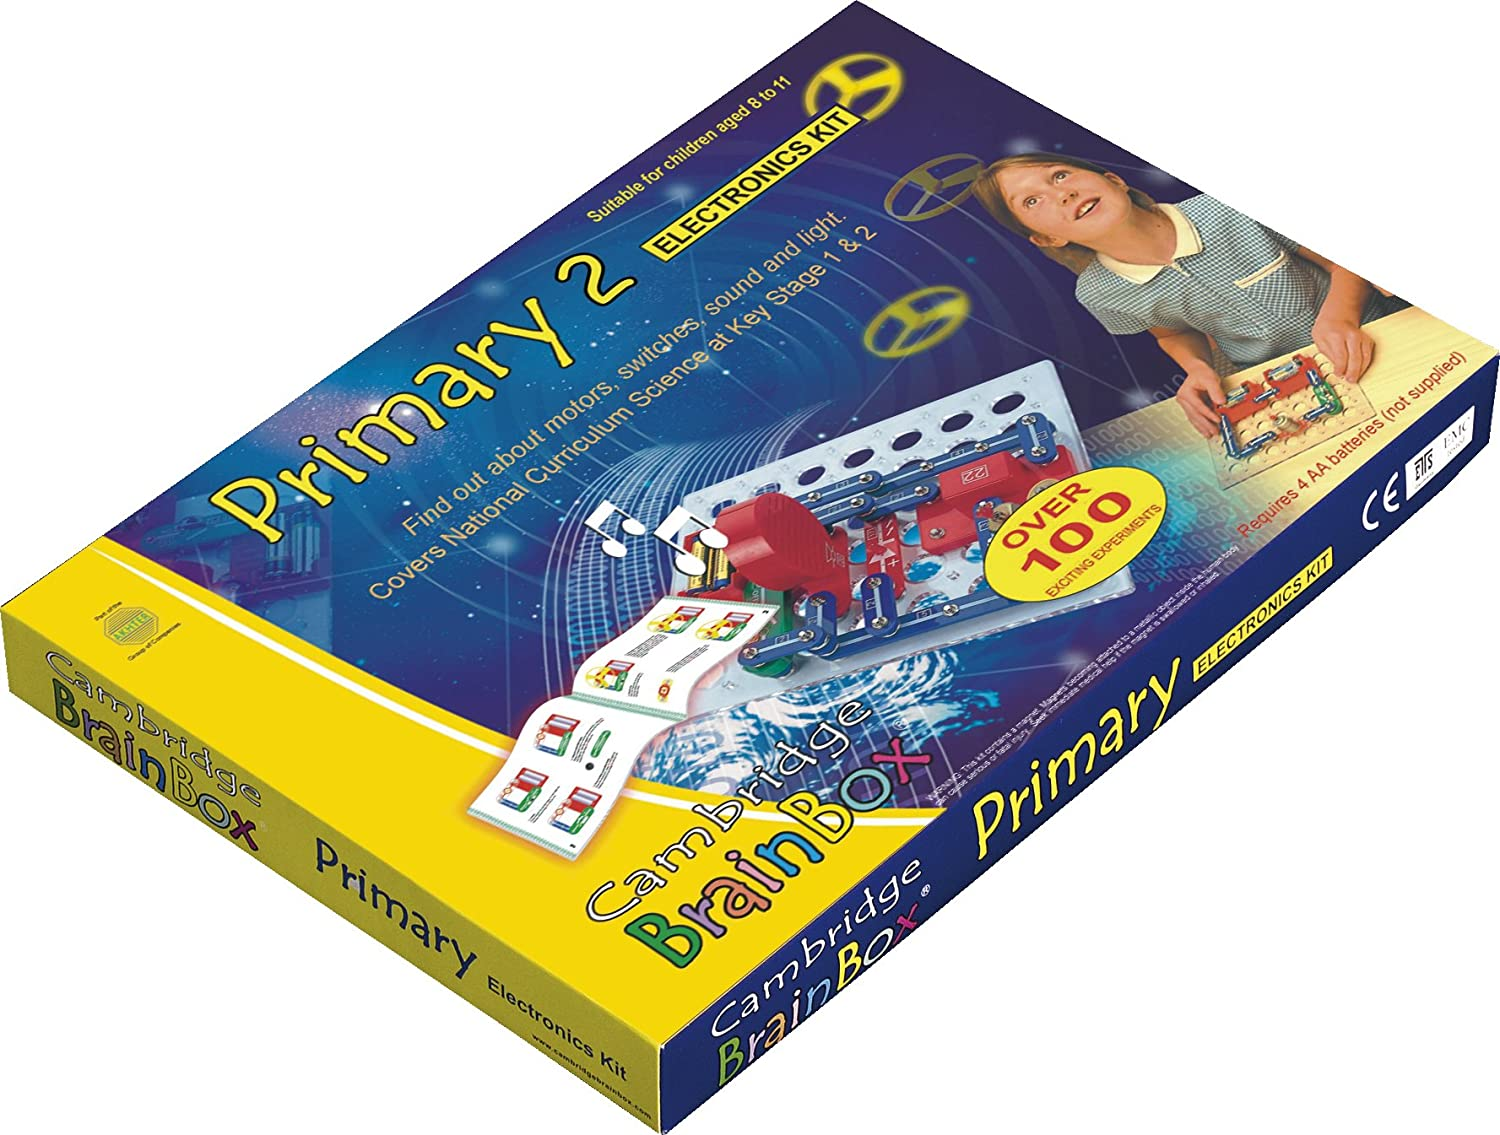 Cambridge Brainbox Primary 2 Electronics Kit Toys Games Circuit Application Dark Activated Switch Circuits